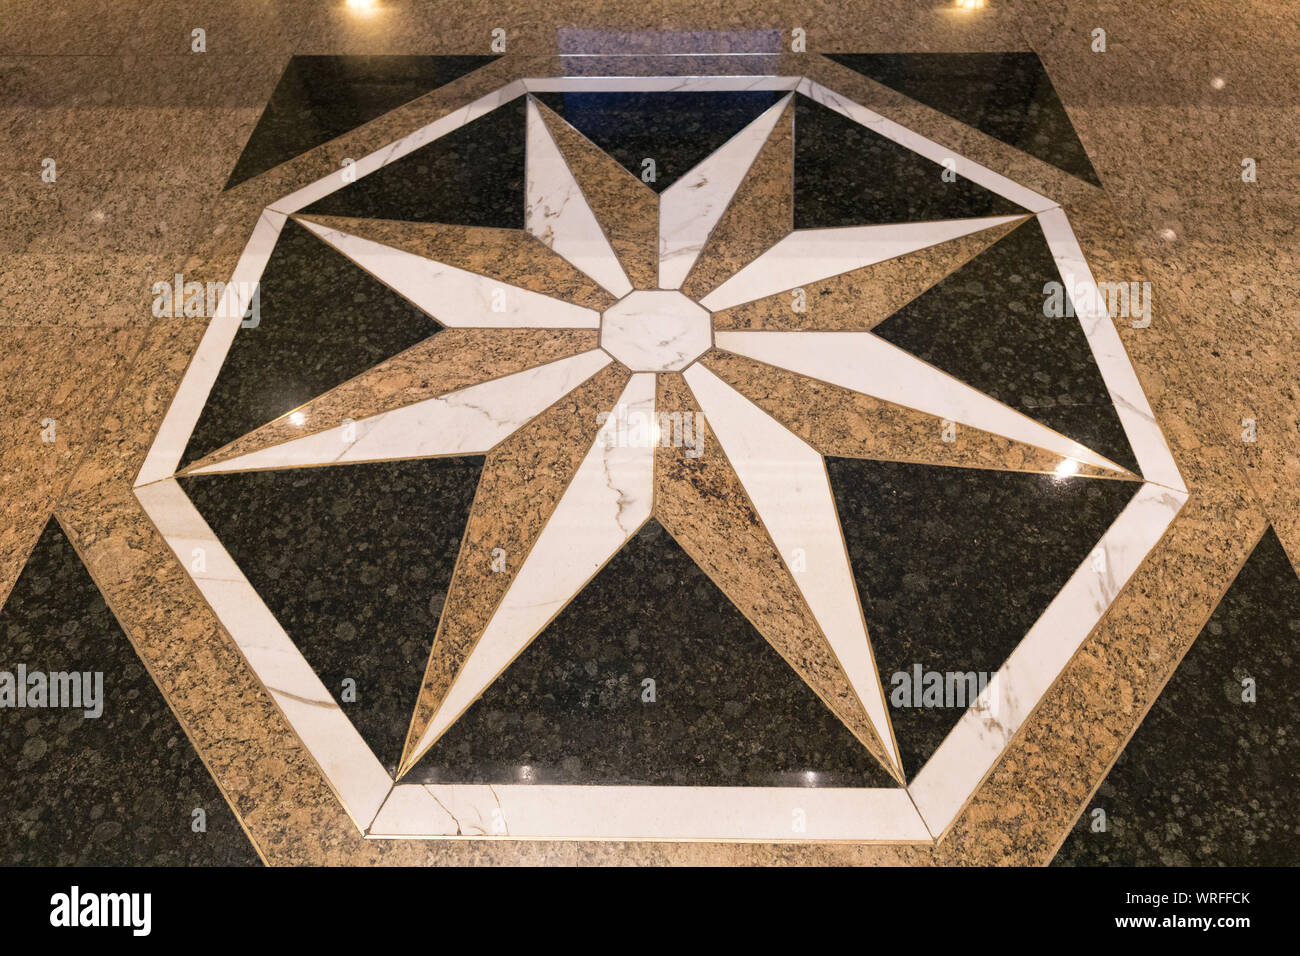 Big White Star At Marble Floor Decor Stock Photo Alamy